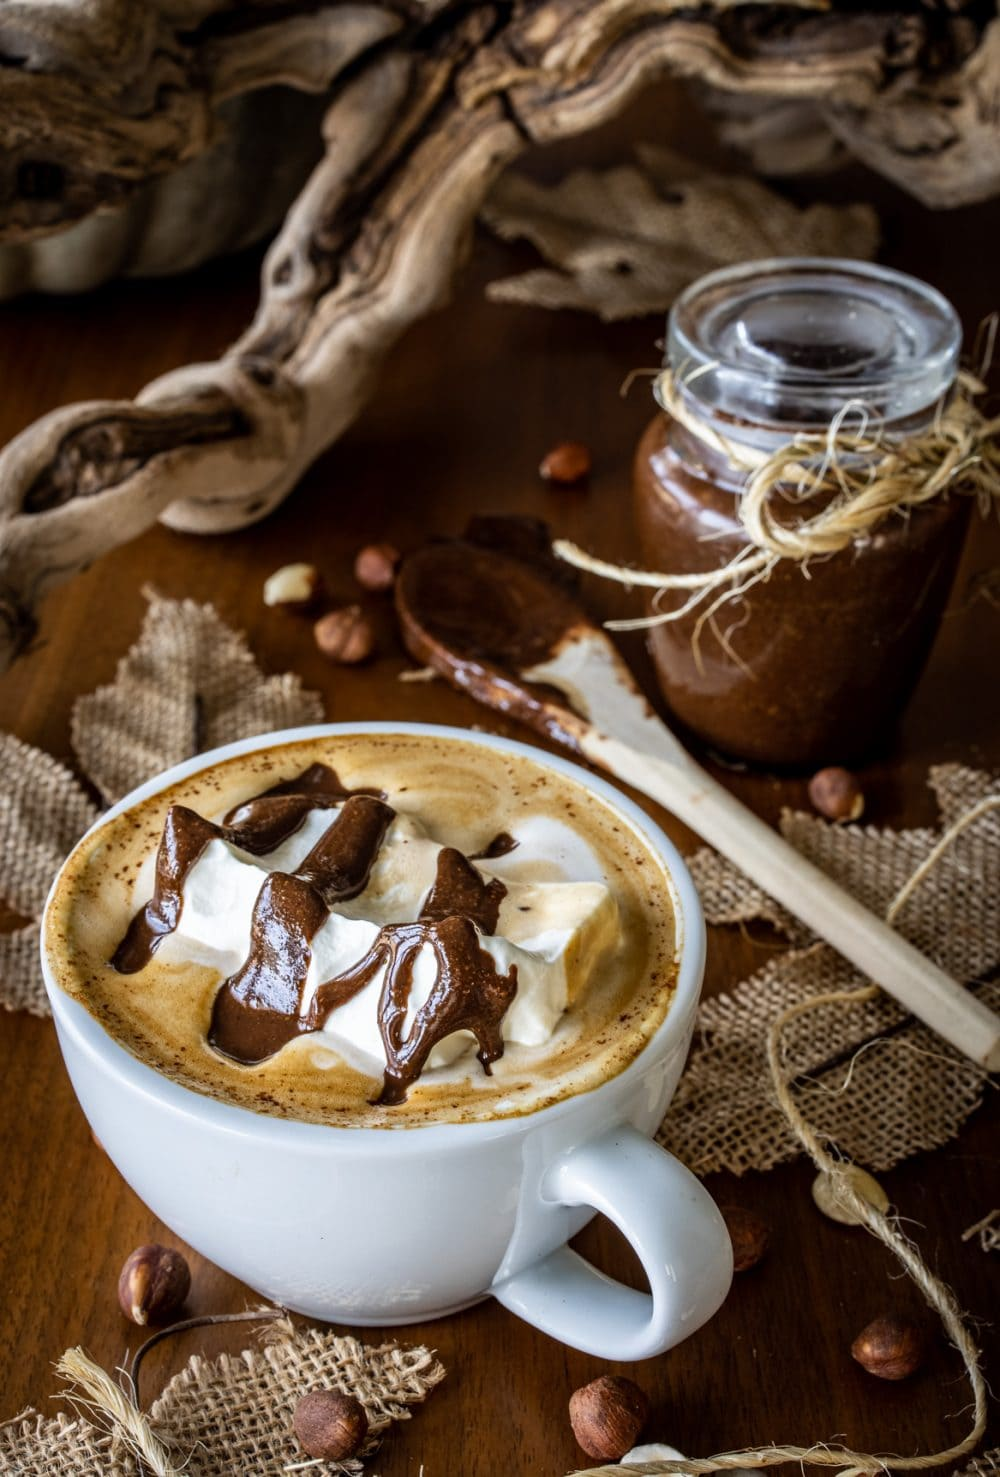 A hazelnut mocha topped with whipped cream and a drizzle of hazelnut butter.